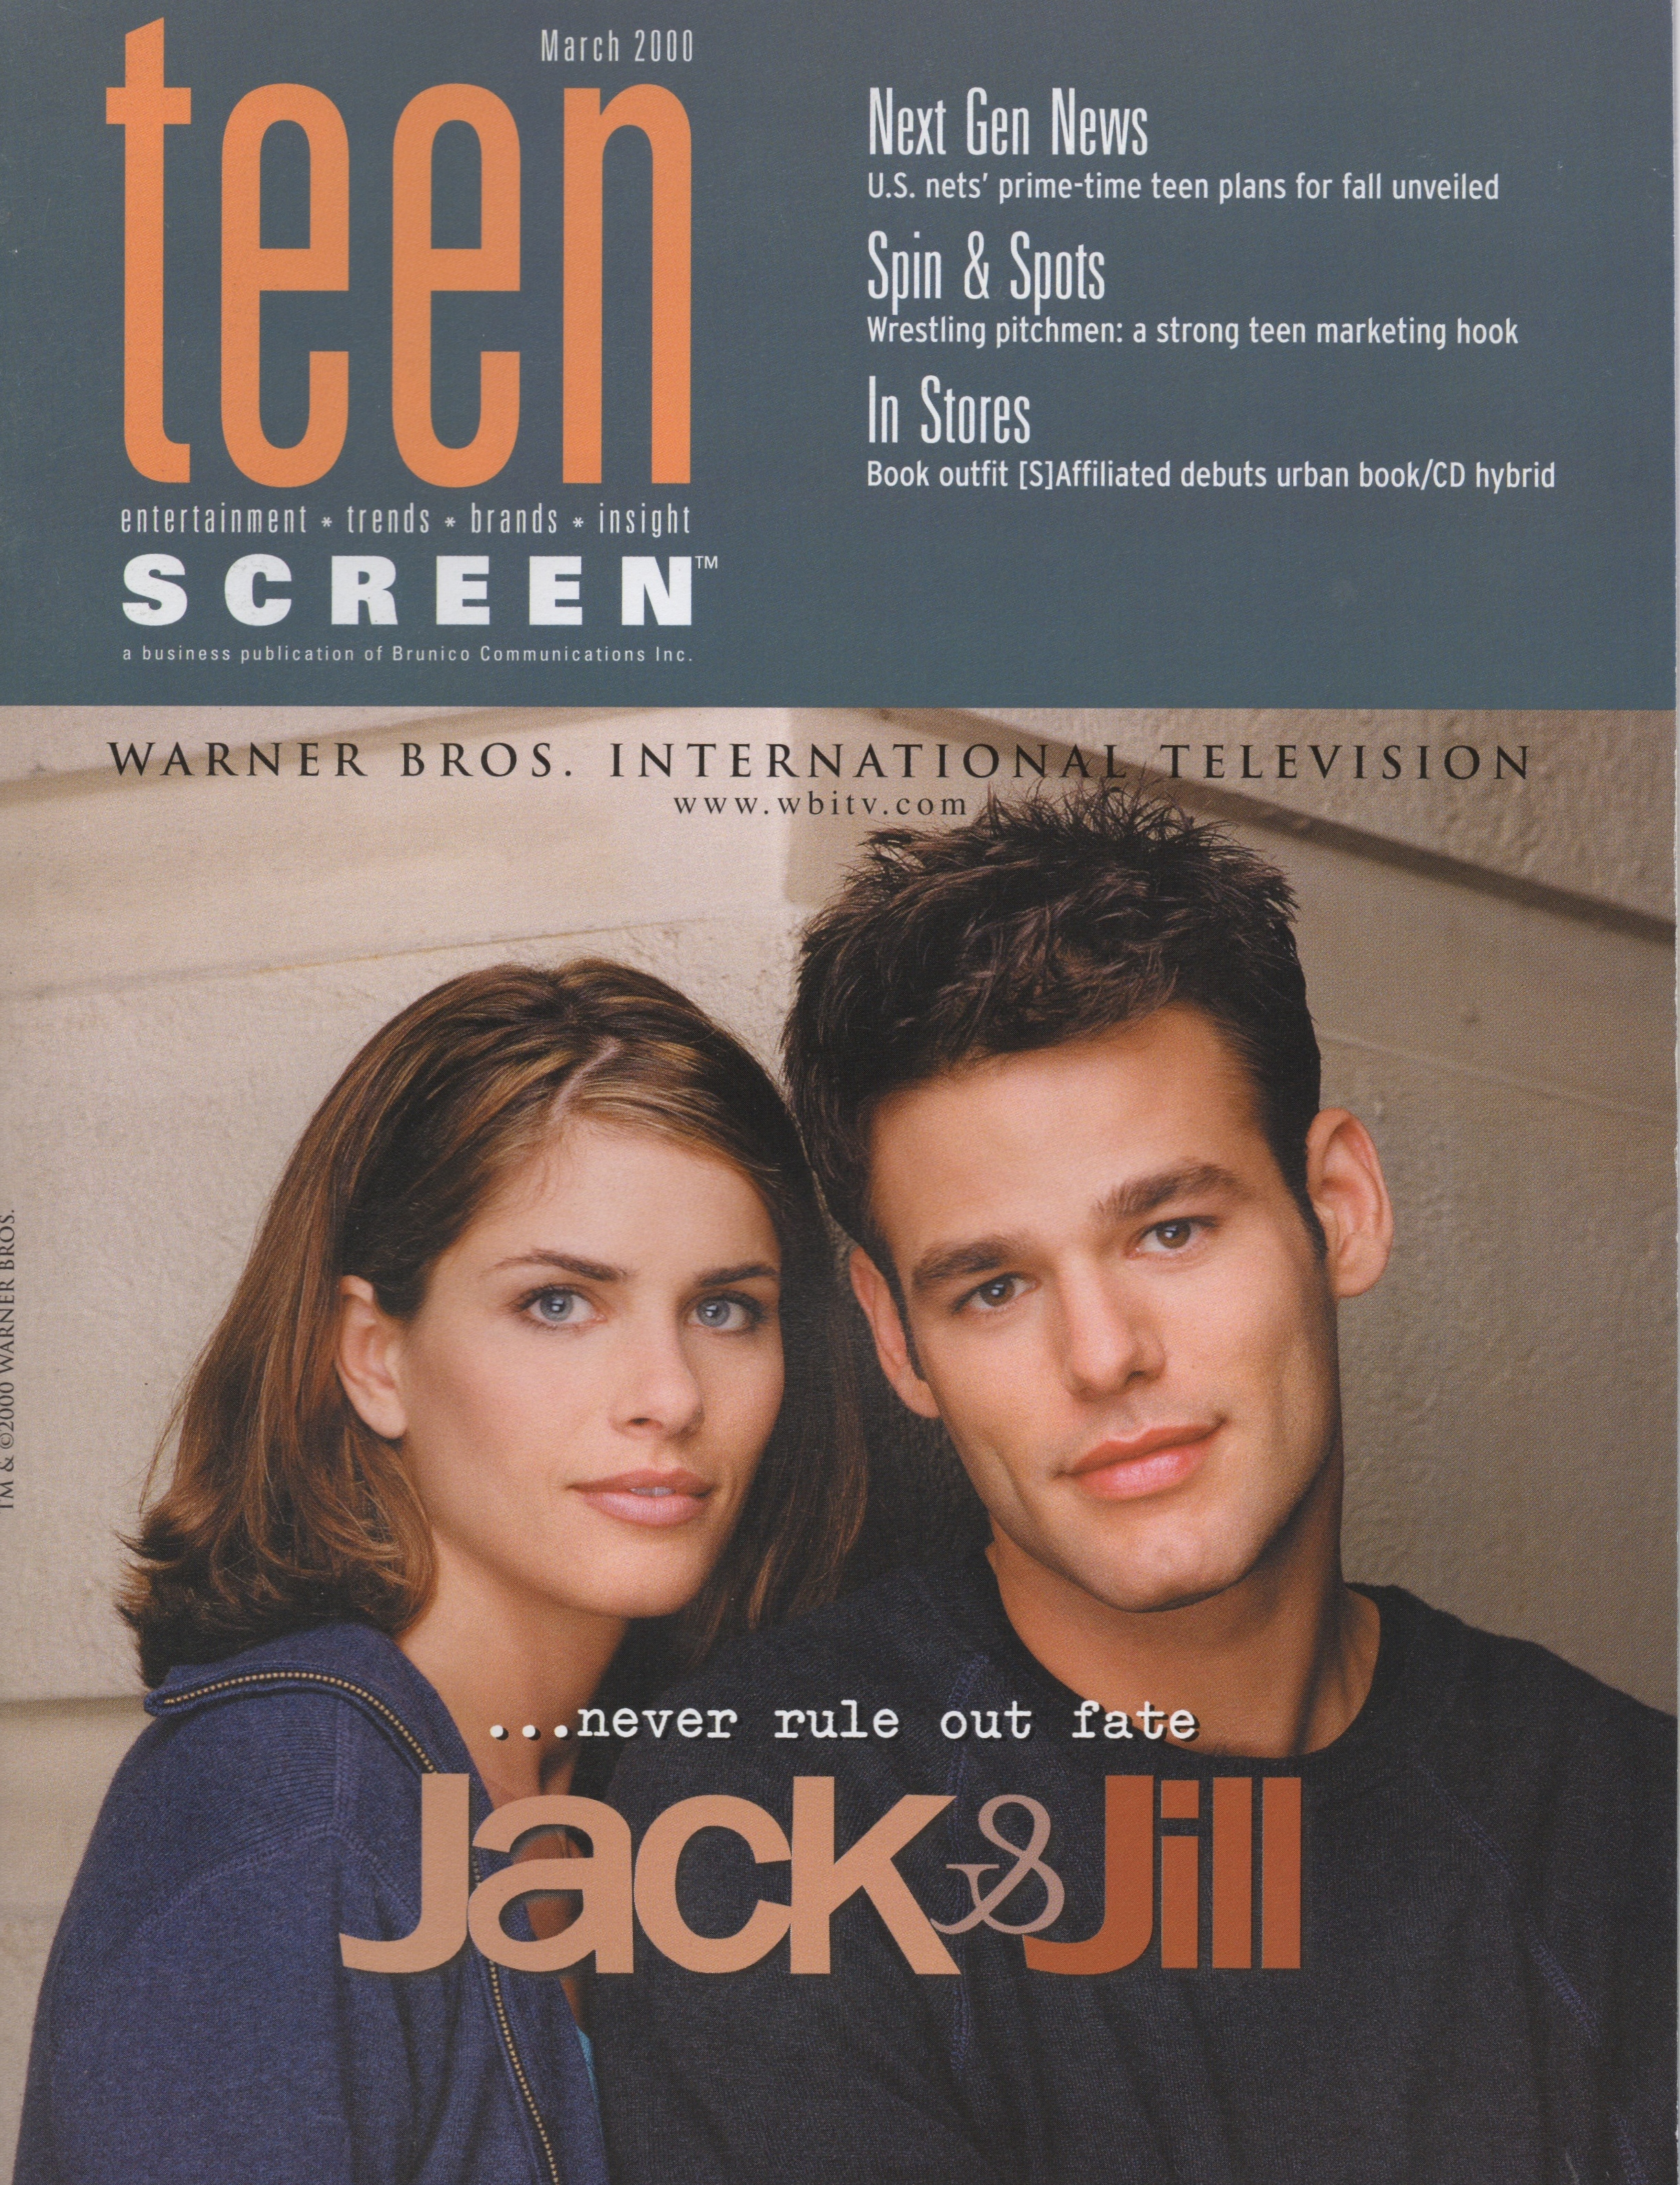 Teenscreen magazine